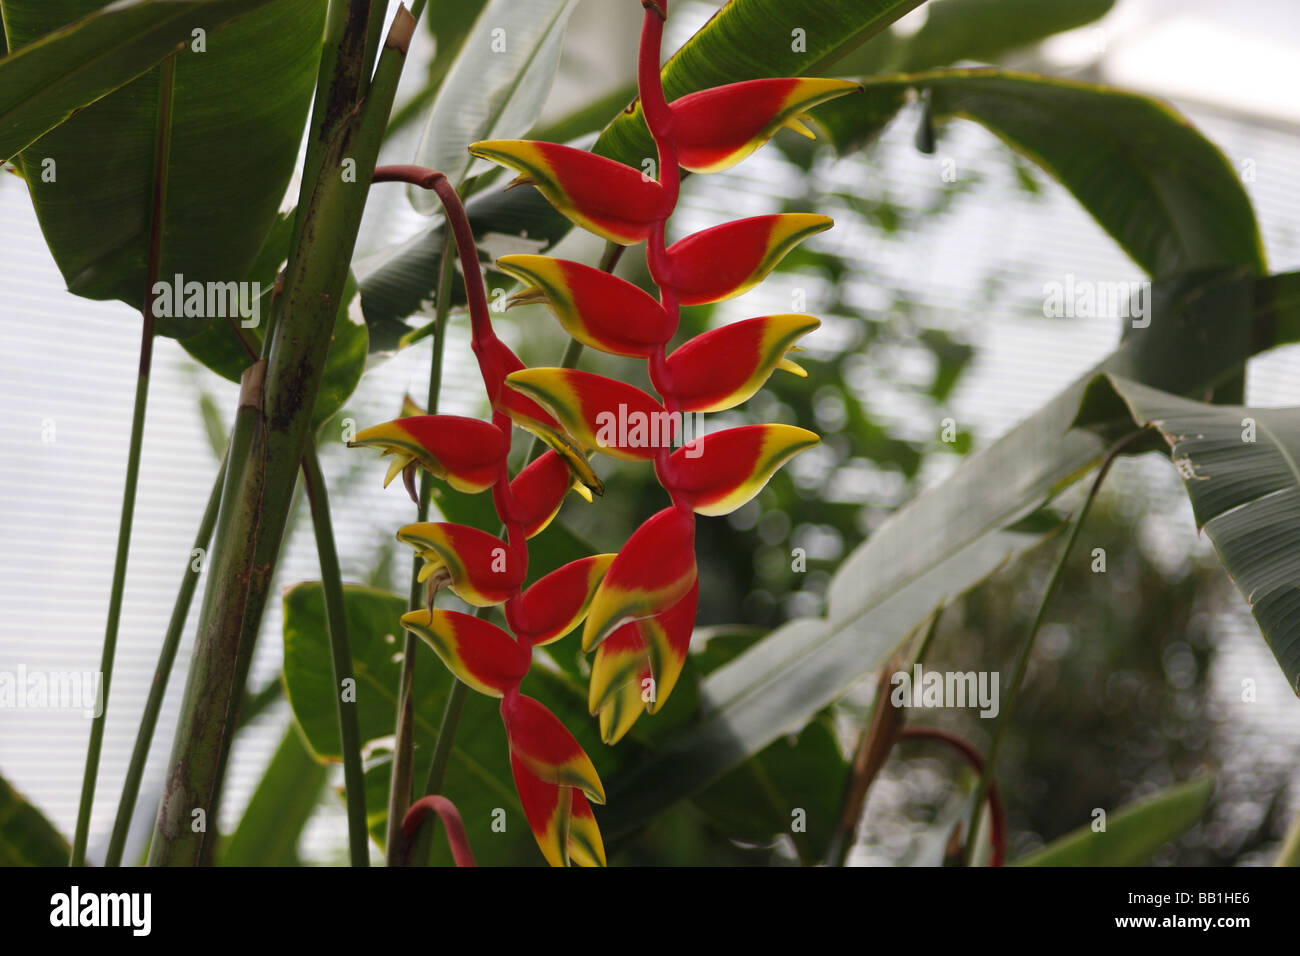 Lobster Claw - Heliconia Rostrata - Stock Image